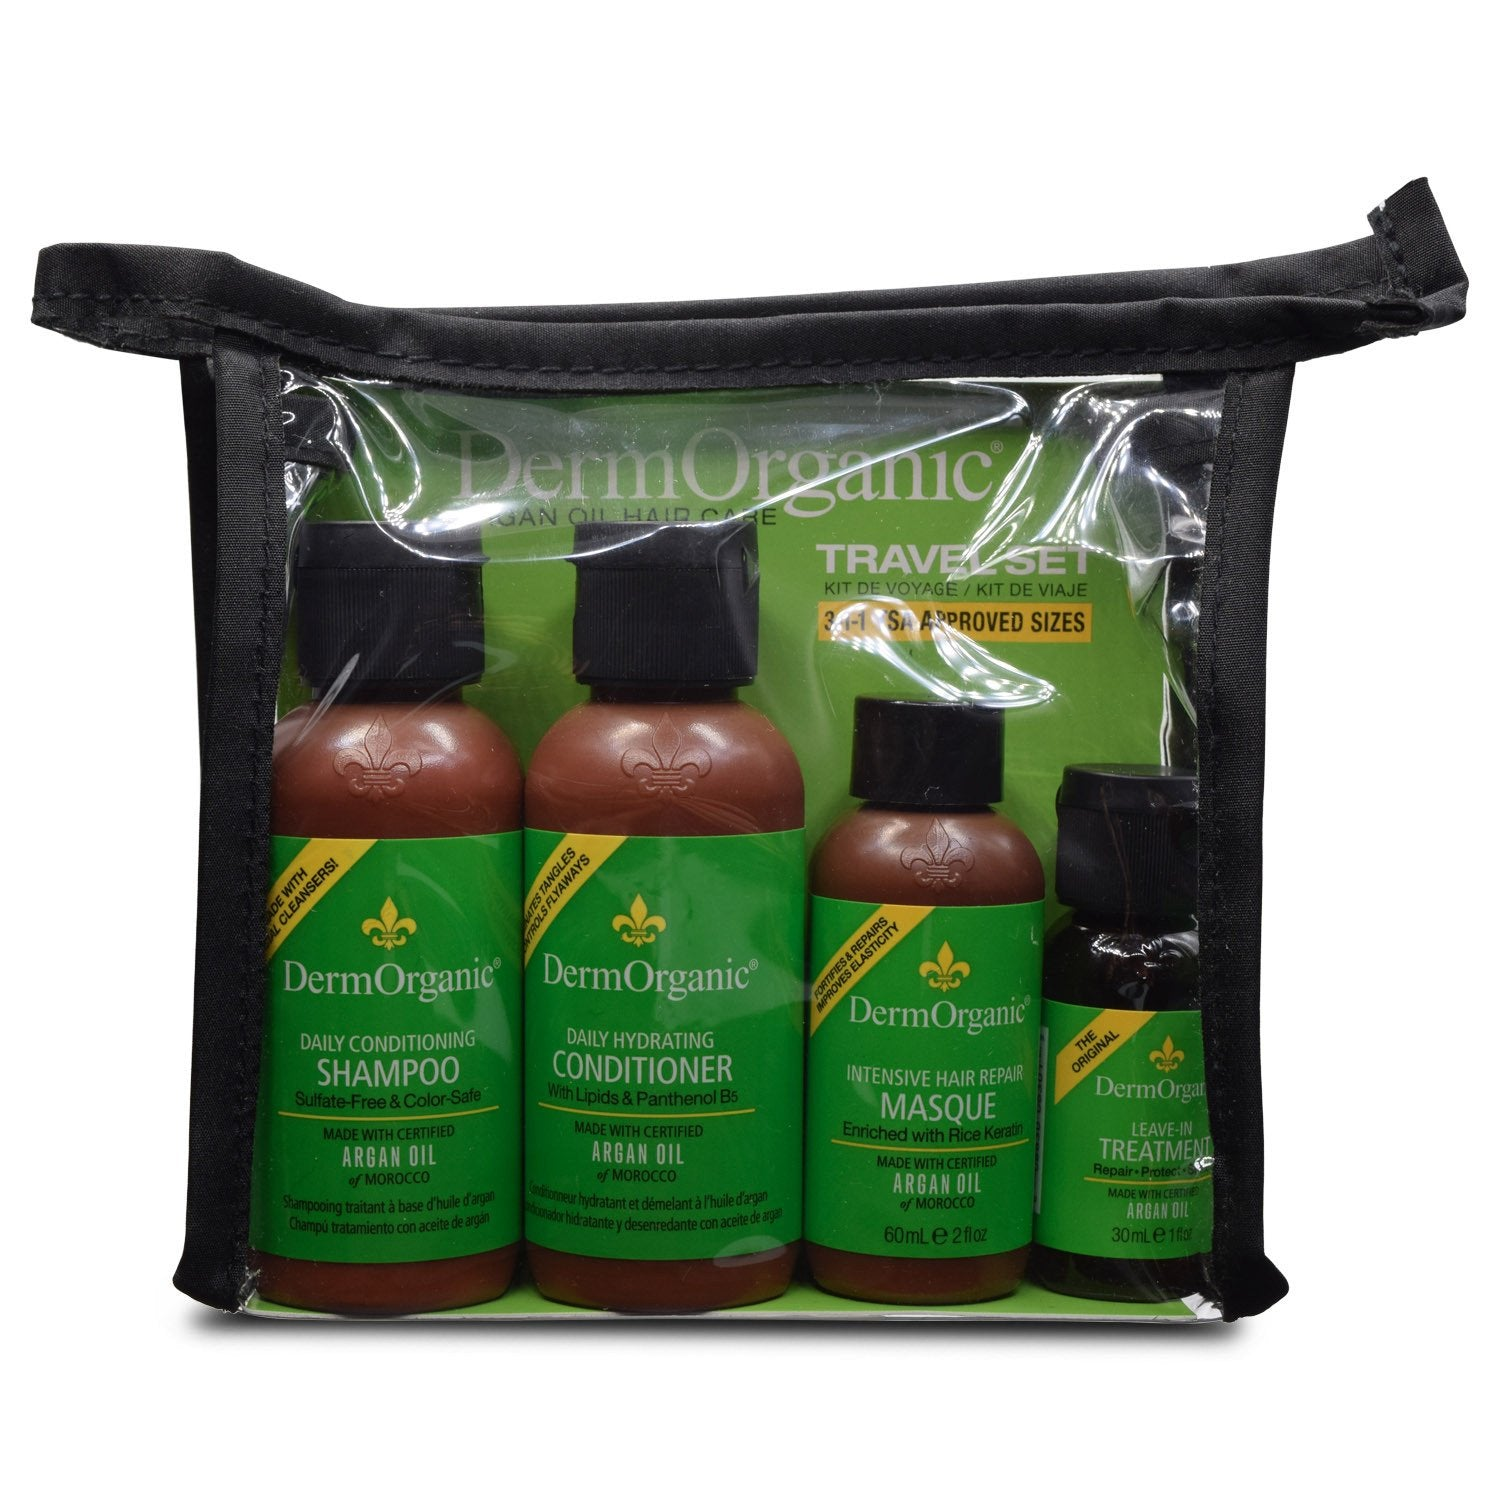 DERMORGANIC ~ Argan Oil Hair Care Travel Set ~ 9 fl oz